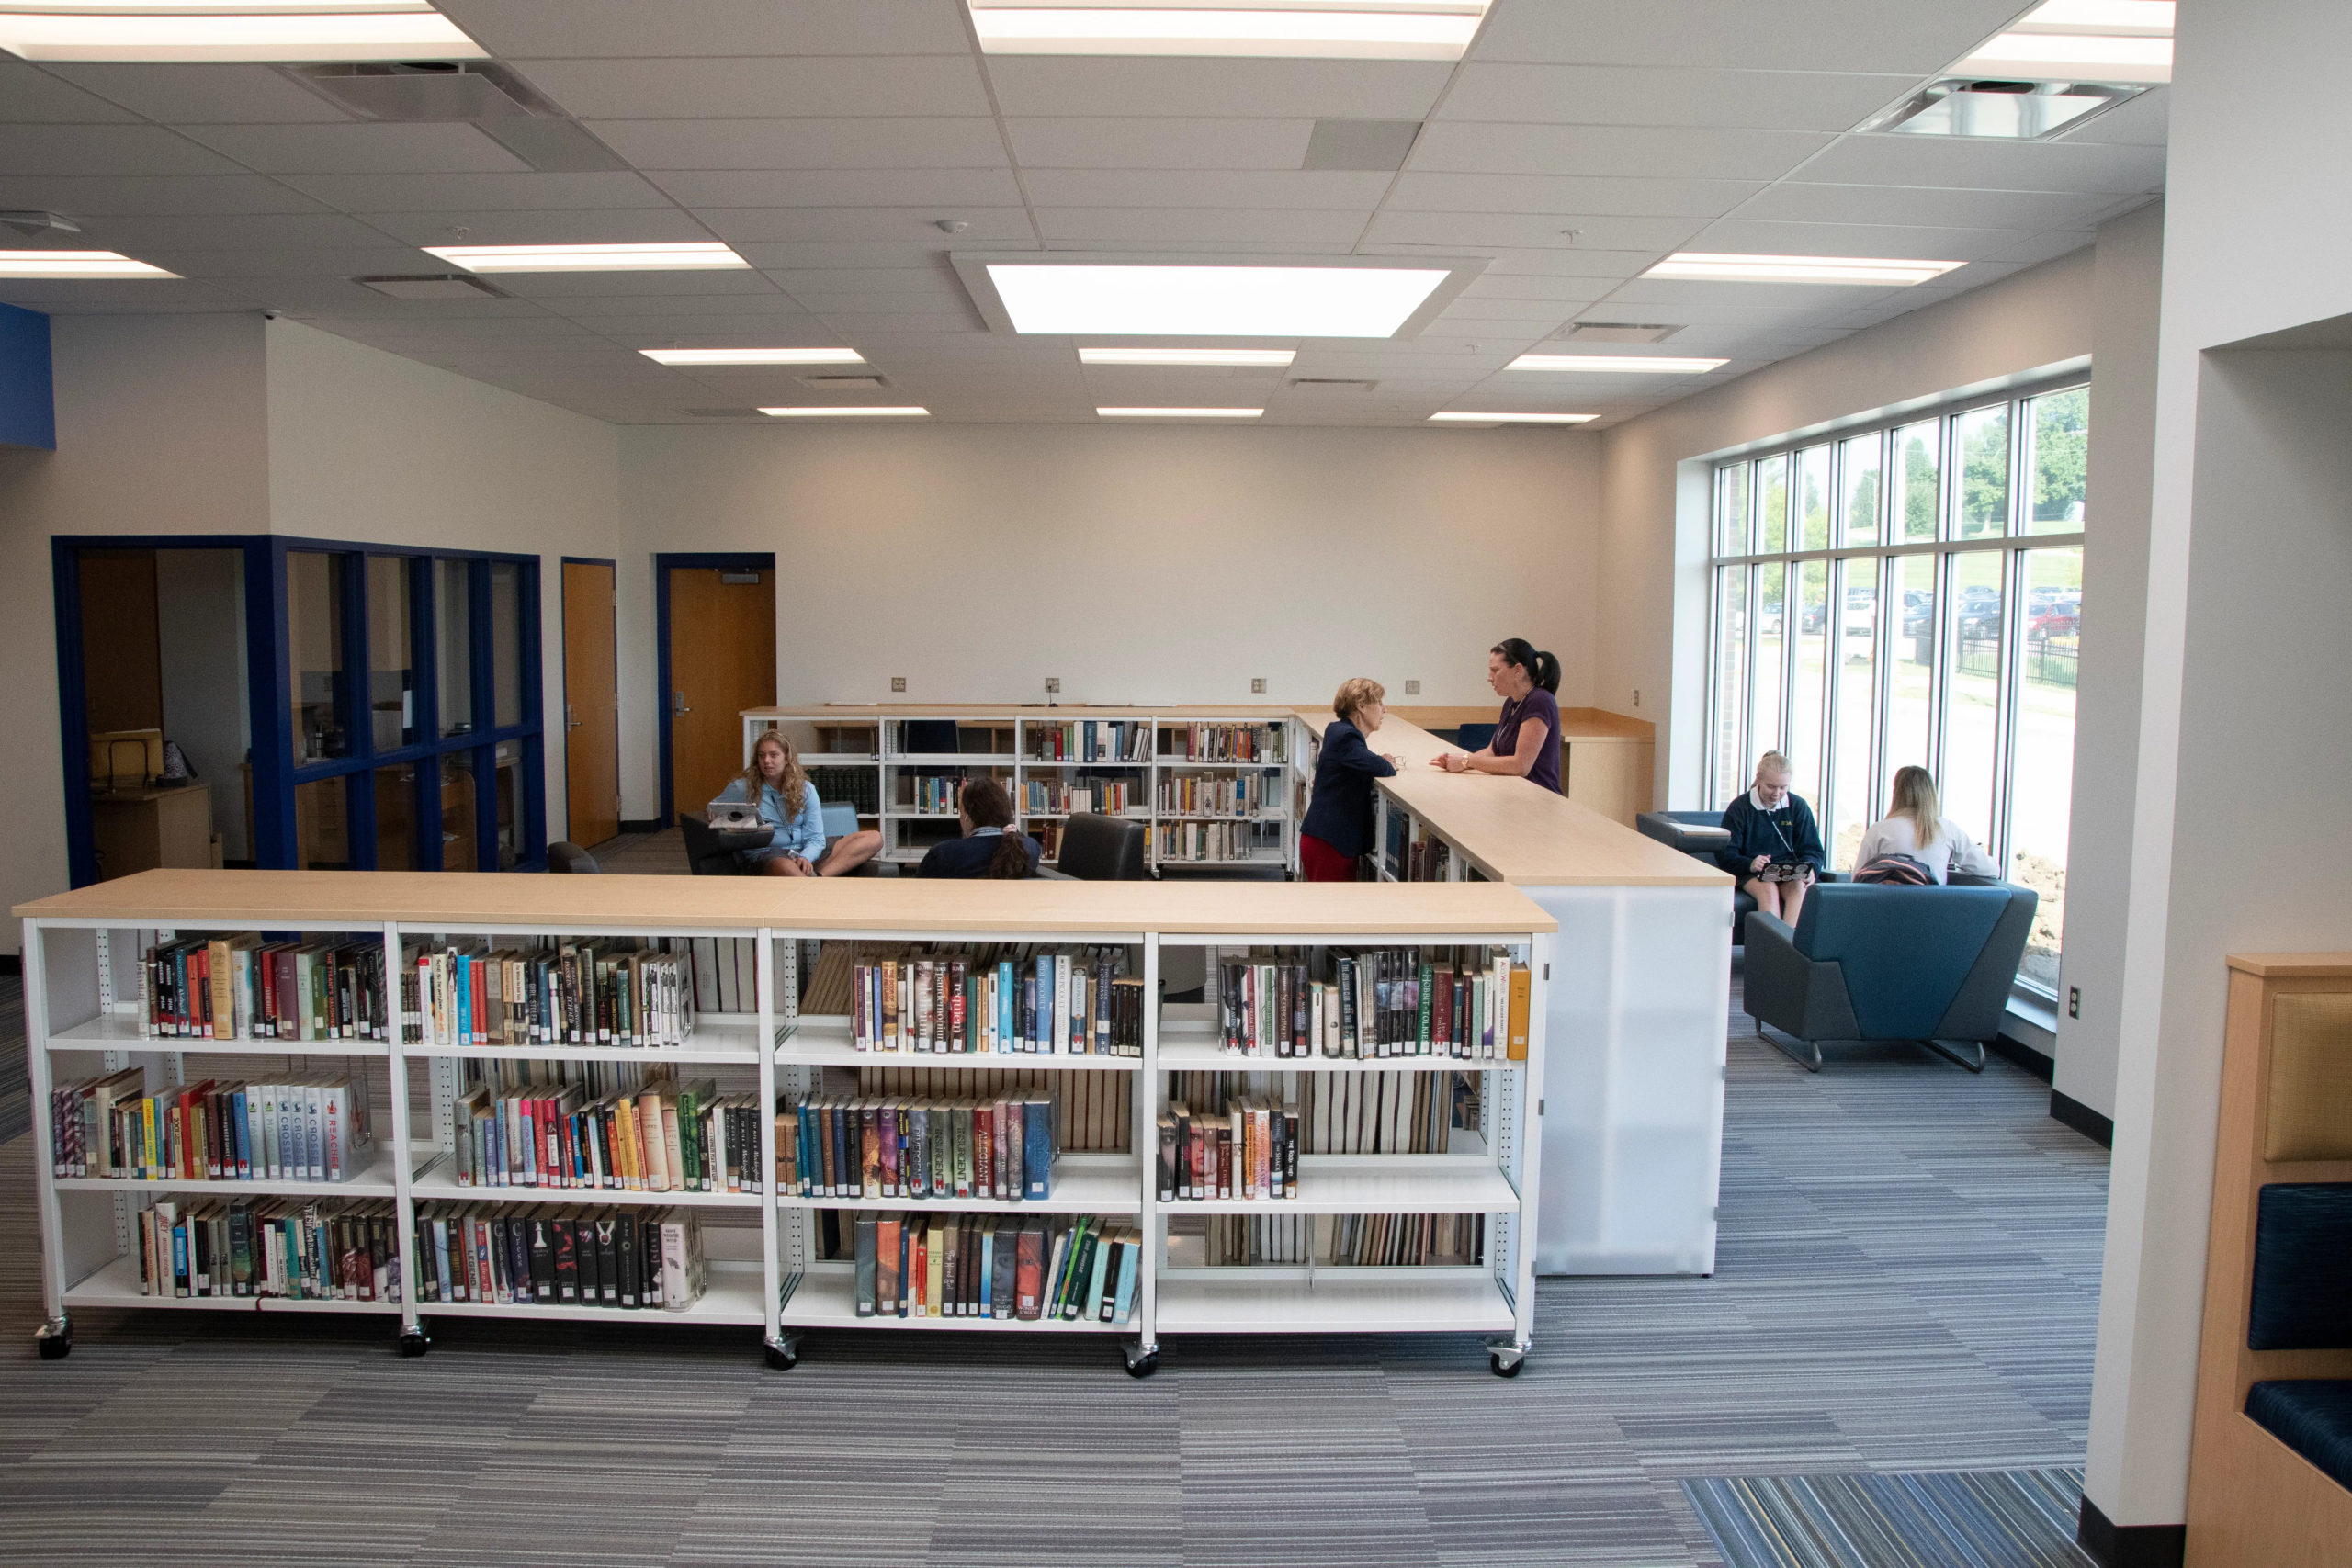 A view of the shelves filled with books and the students sitting and studying at chairs and tables in the Collaborative Learnin Center at Notre Dame Academy catholic all-girls school in Northern Kentucky.